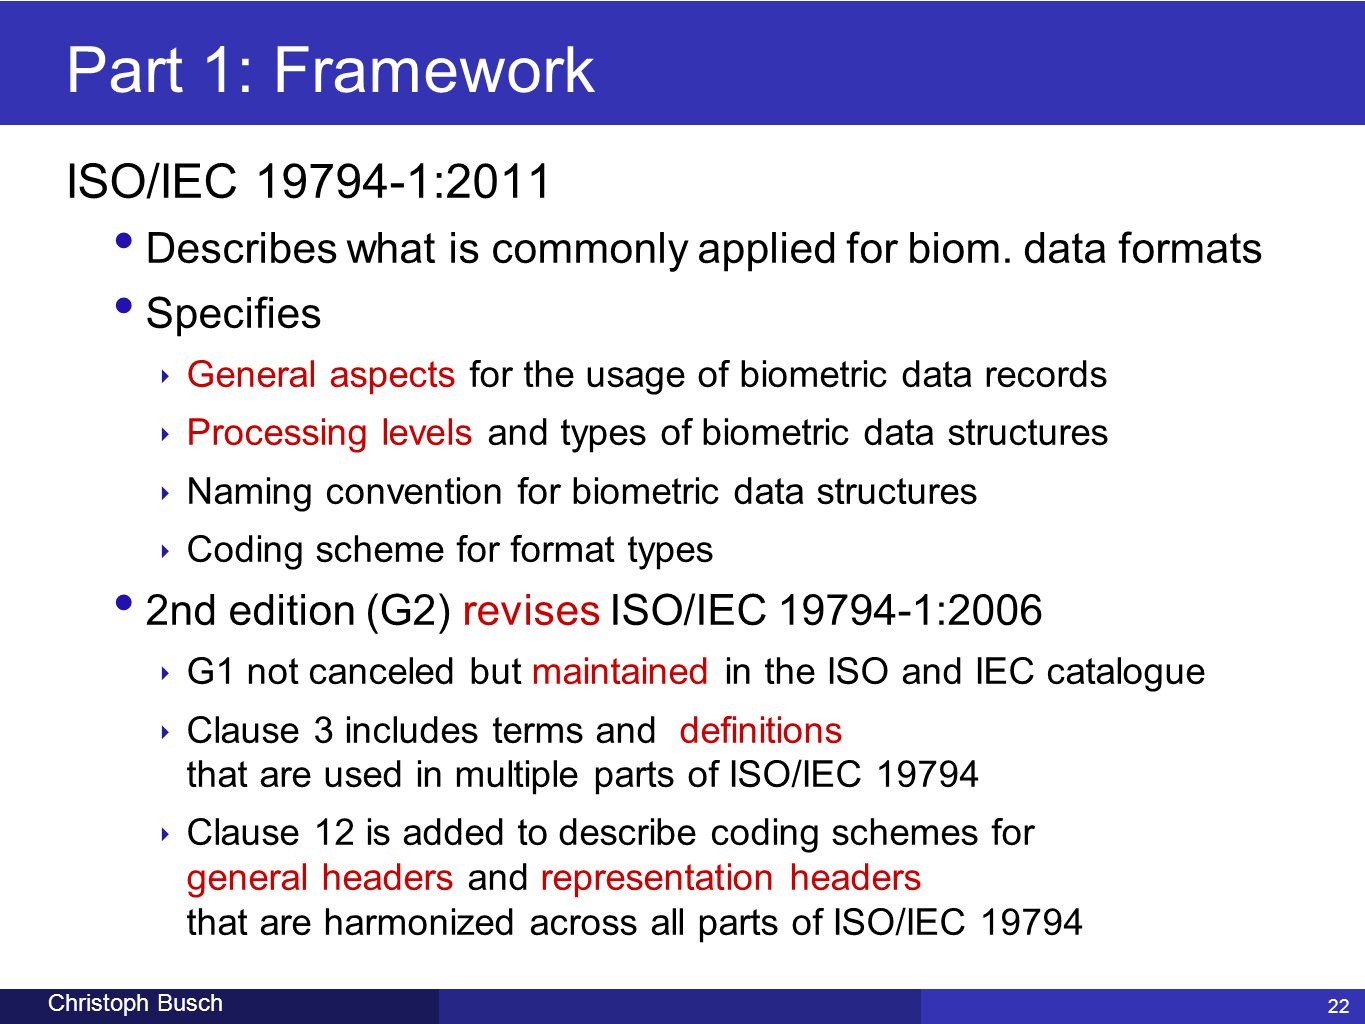 22 Christoph Busch Part 1: Framework ISO/IEC 19794-1:2011 Describes what is commonly applied for biom. data formats Specifies ‣ General aspects for th